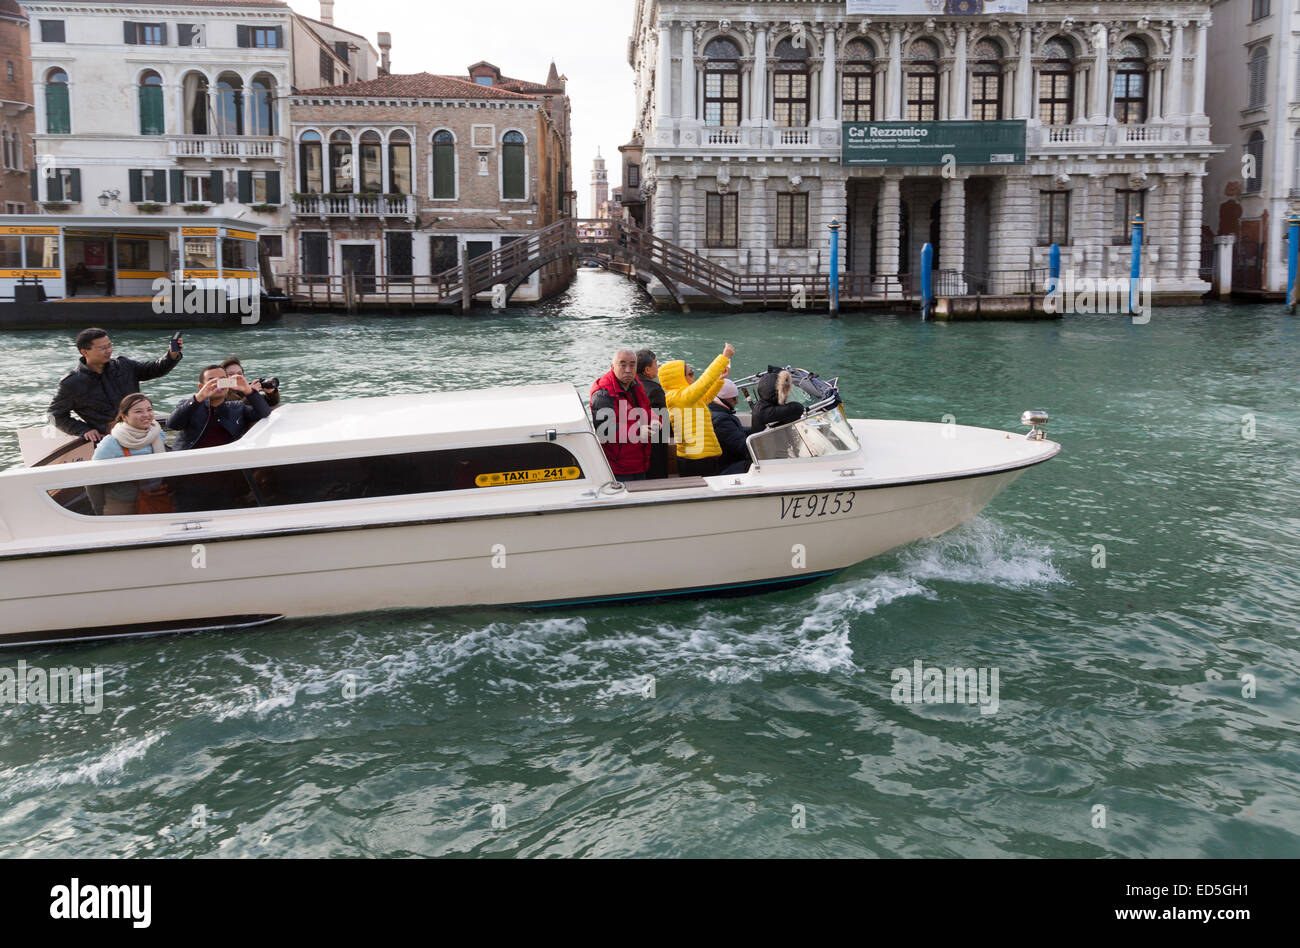 tourists photographing on Venice taxi, Grand Canal, Venice, Italy - Stock Image